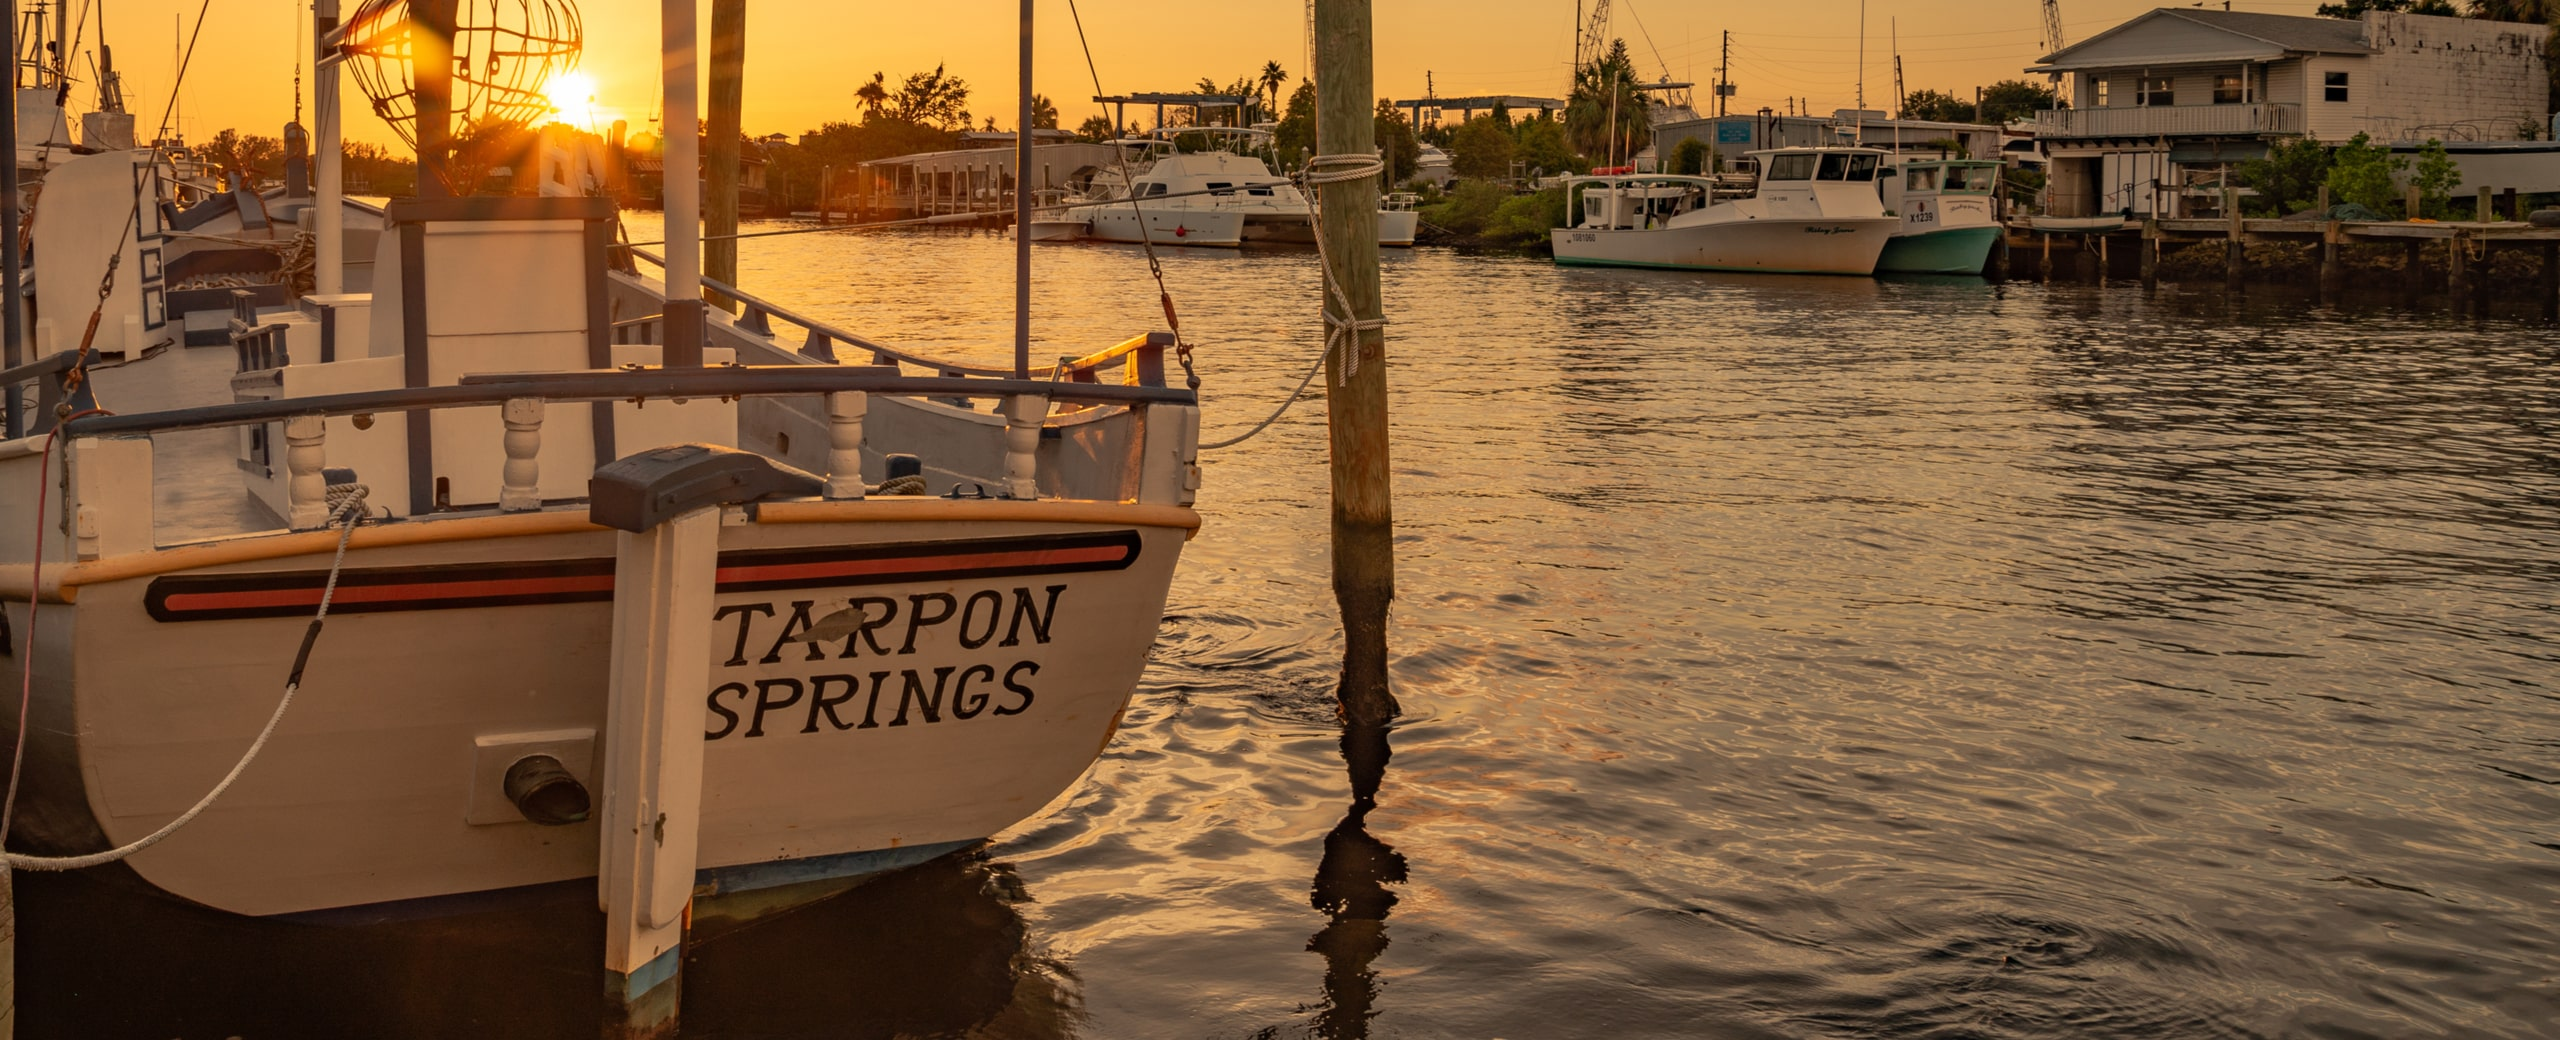 tarpon springs boat at sunset